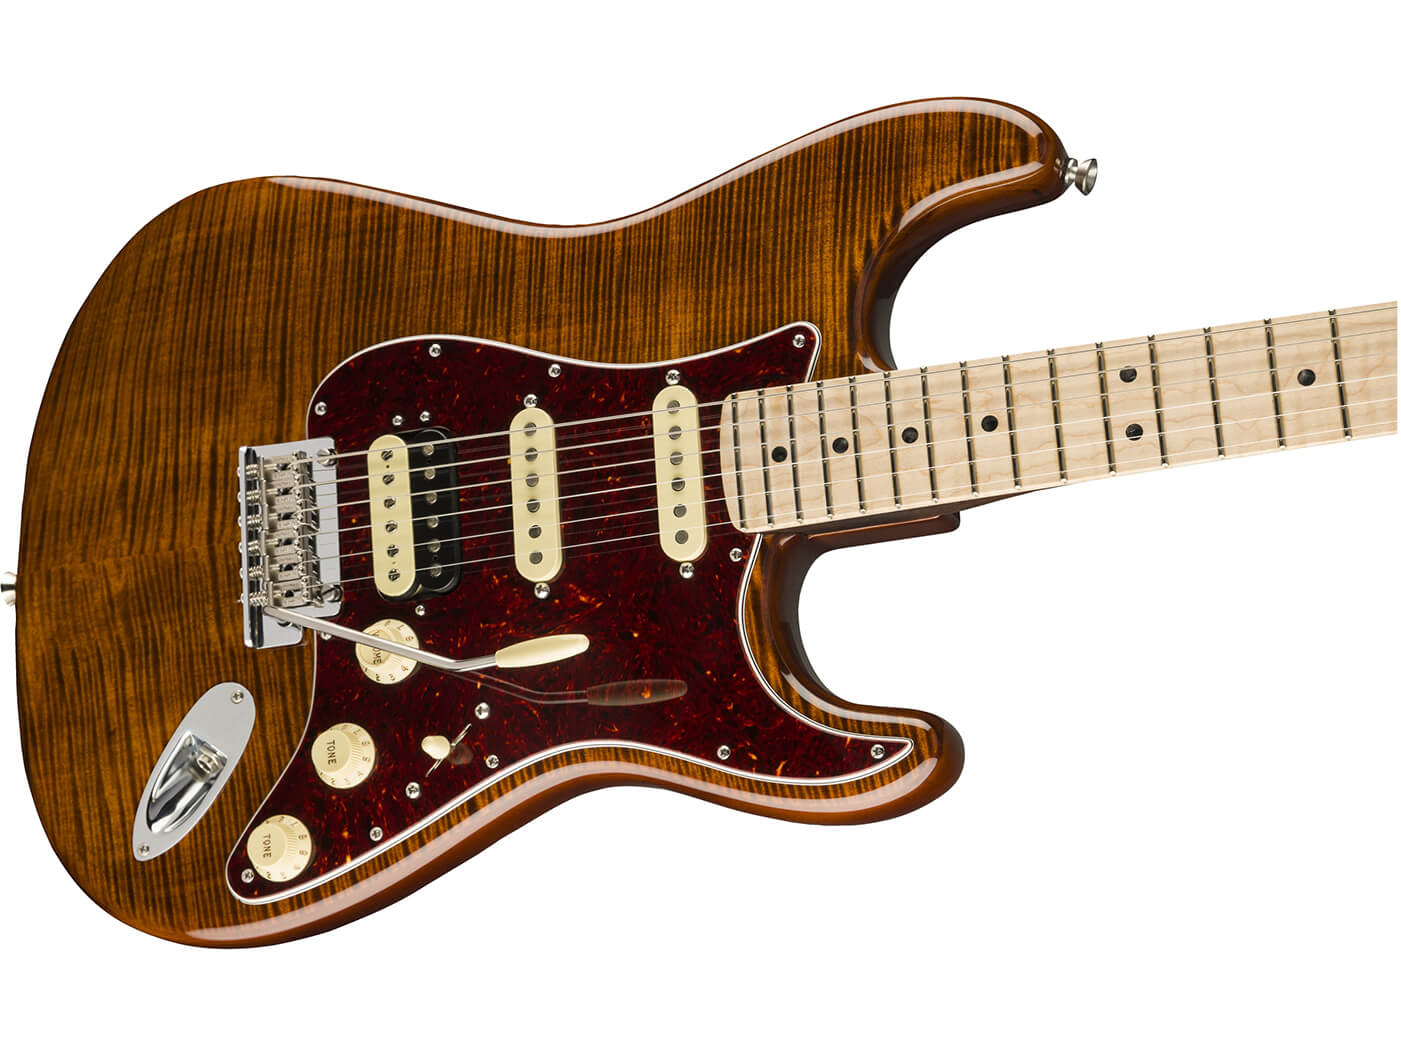 Fender flame maple top stratocaster